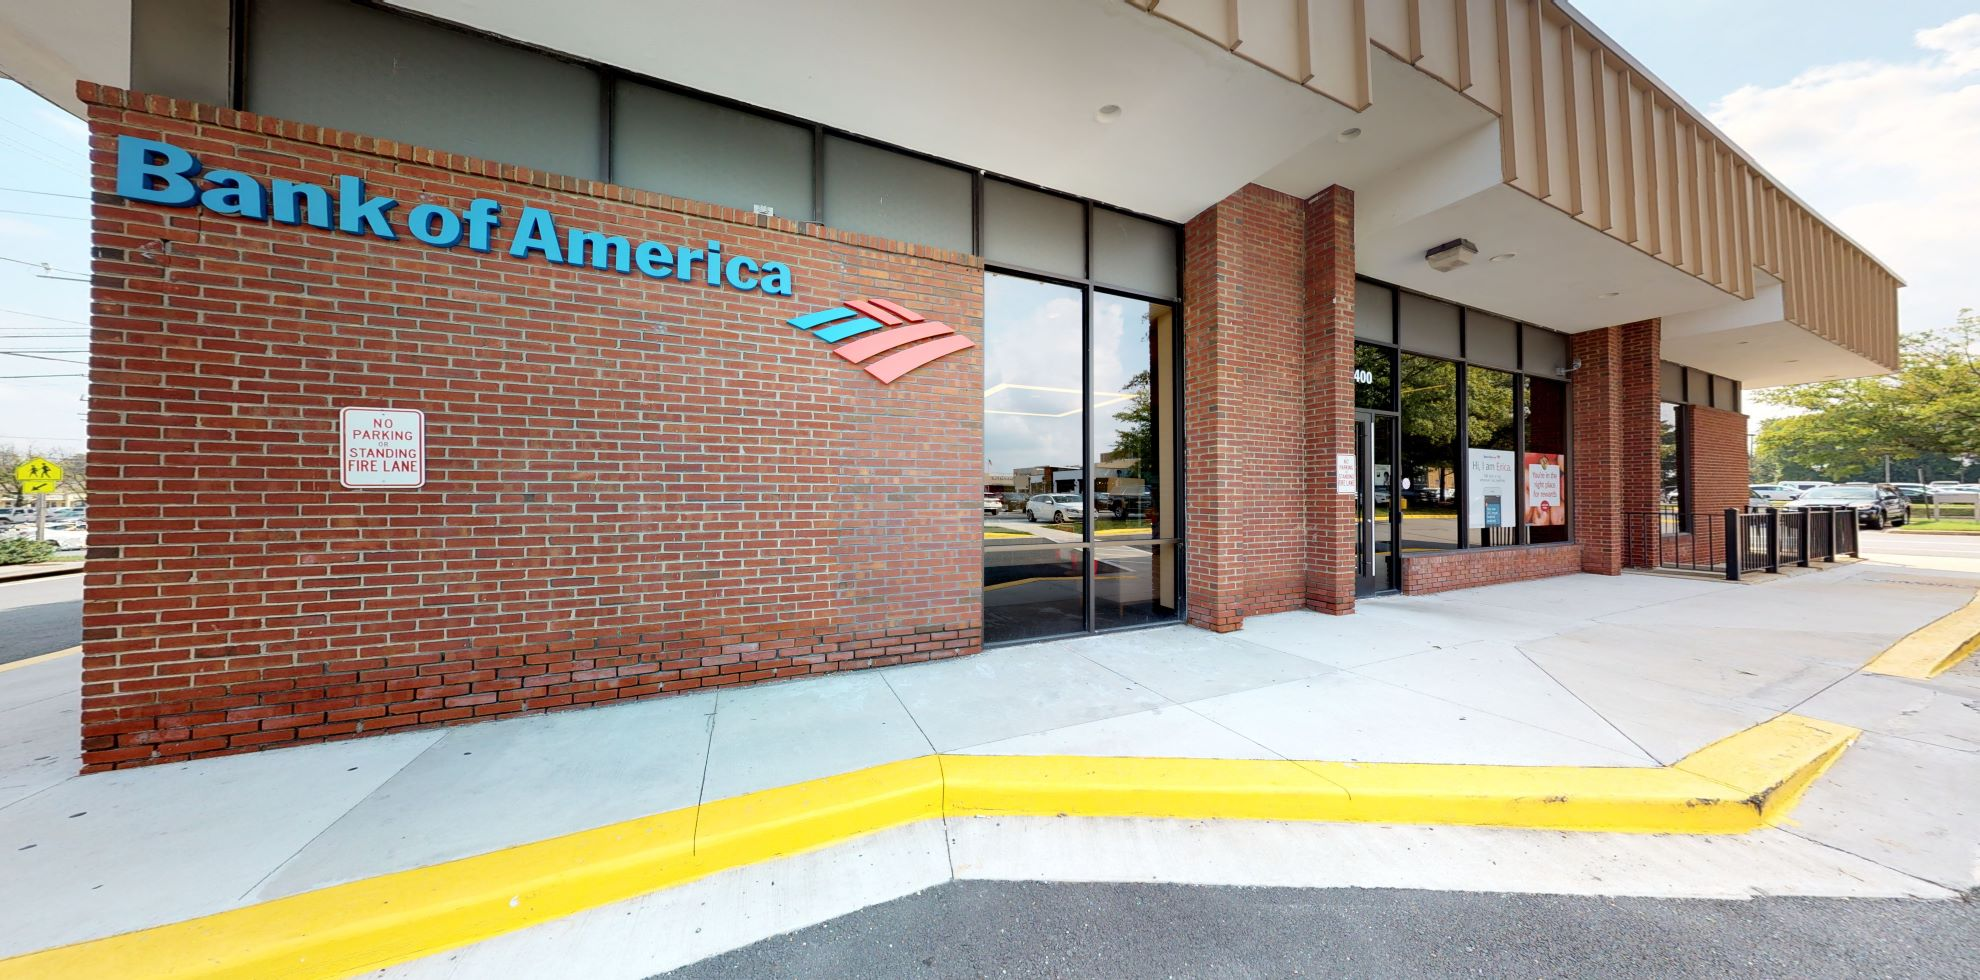 Bank of America financial center with drive-thru ATM   10400 Old Georgetown Rd, Bethesda, MD 20814